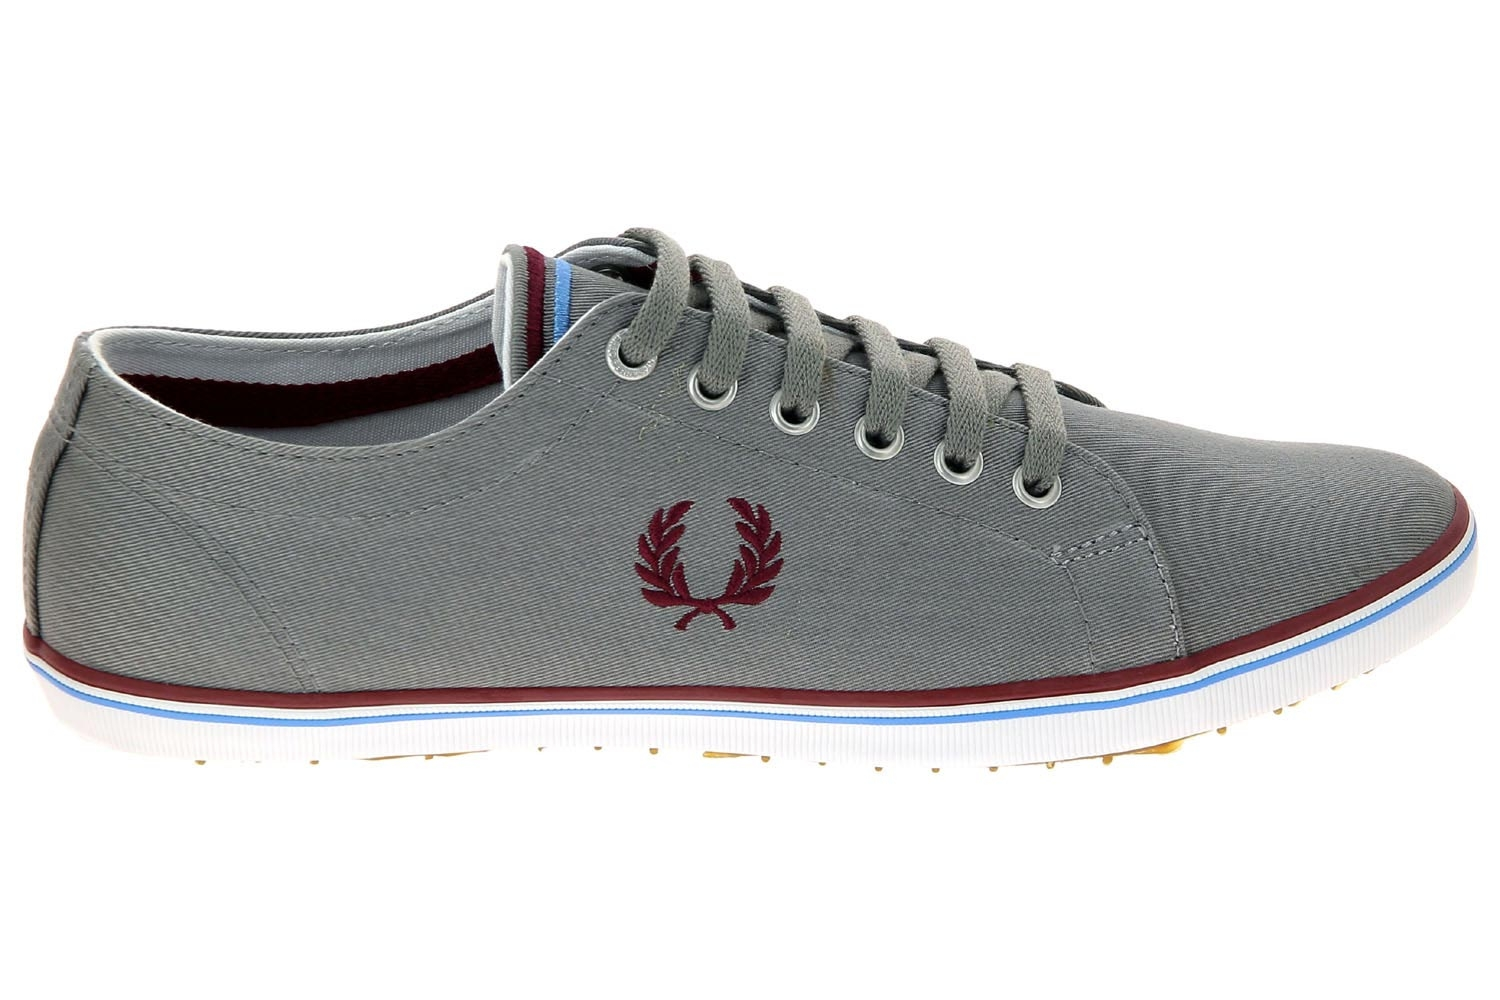 d43dd755c76 Chaussures en toile fred perry gris